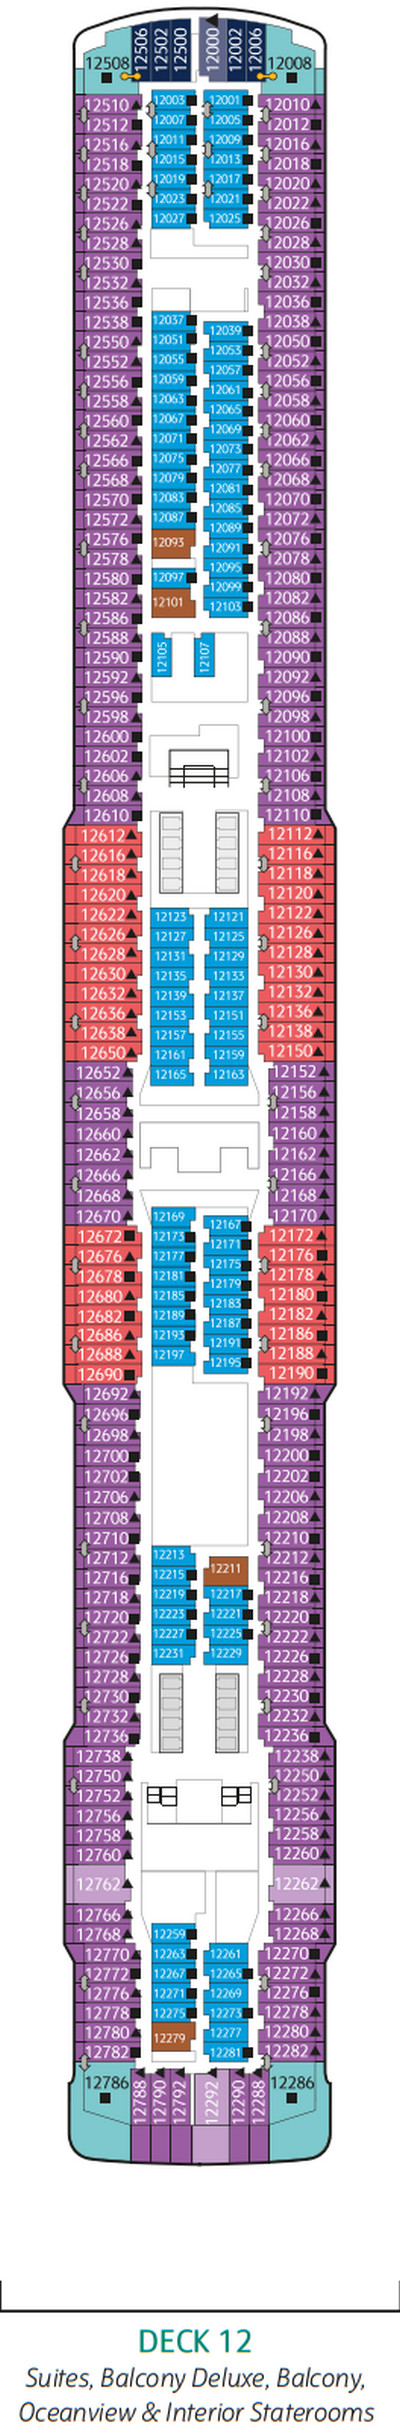 Genting Dream Deck 12 layout